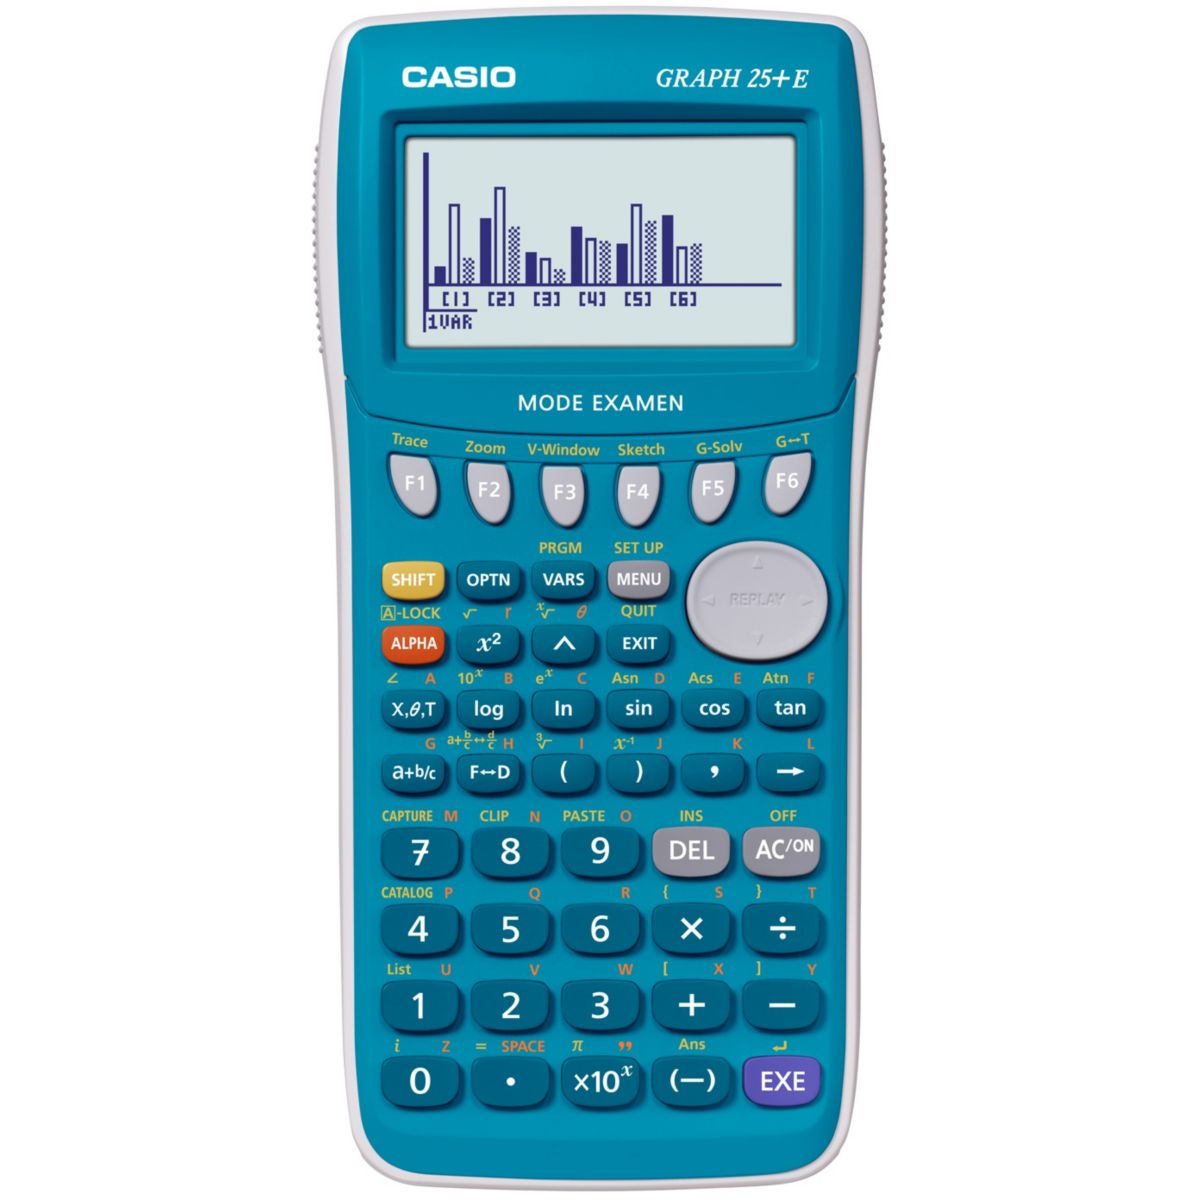 Calculatrice graphique CASIO GRAPH 25+ E (photo)